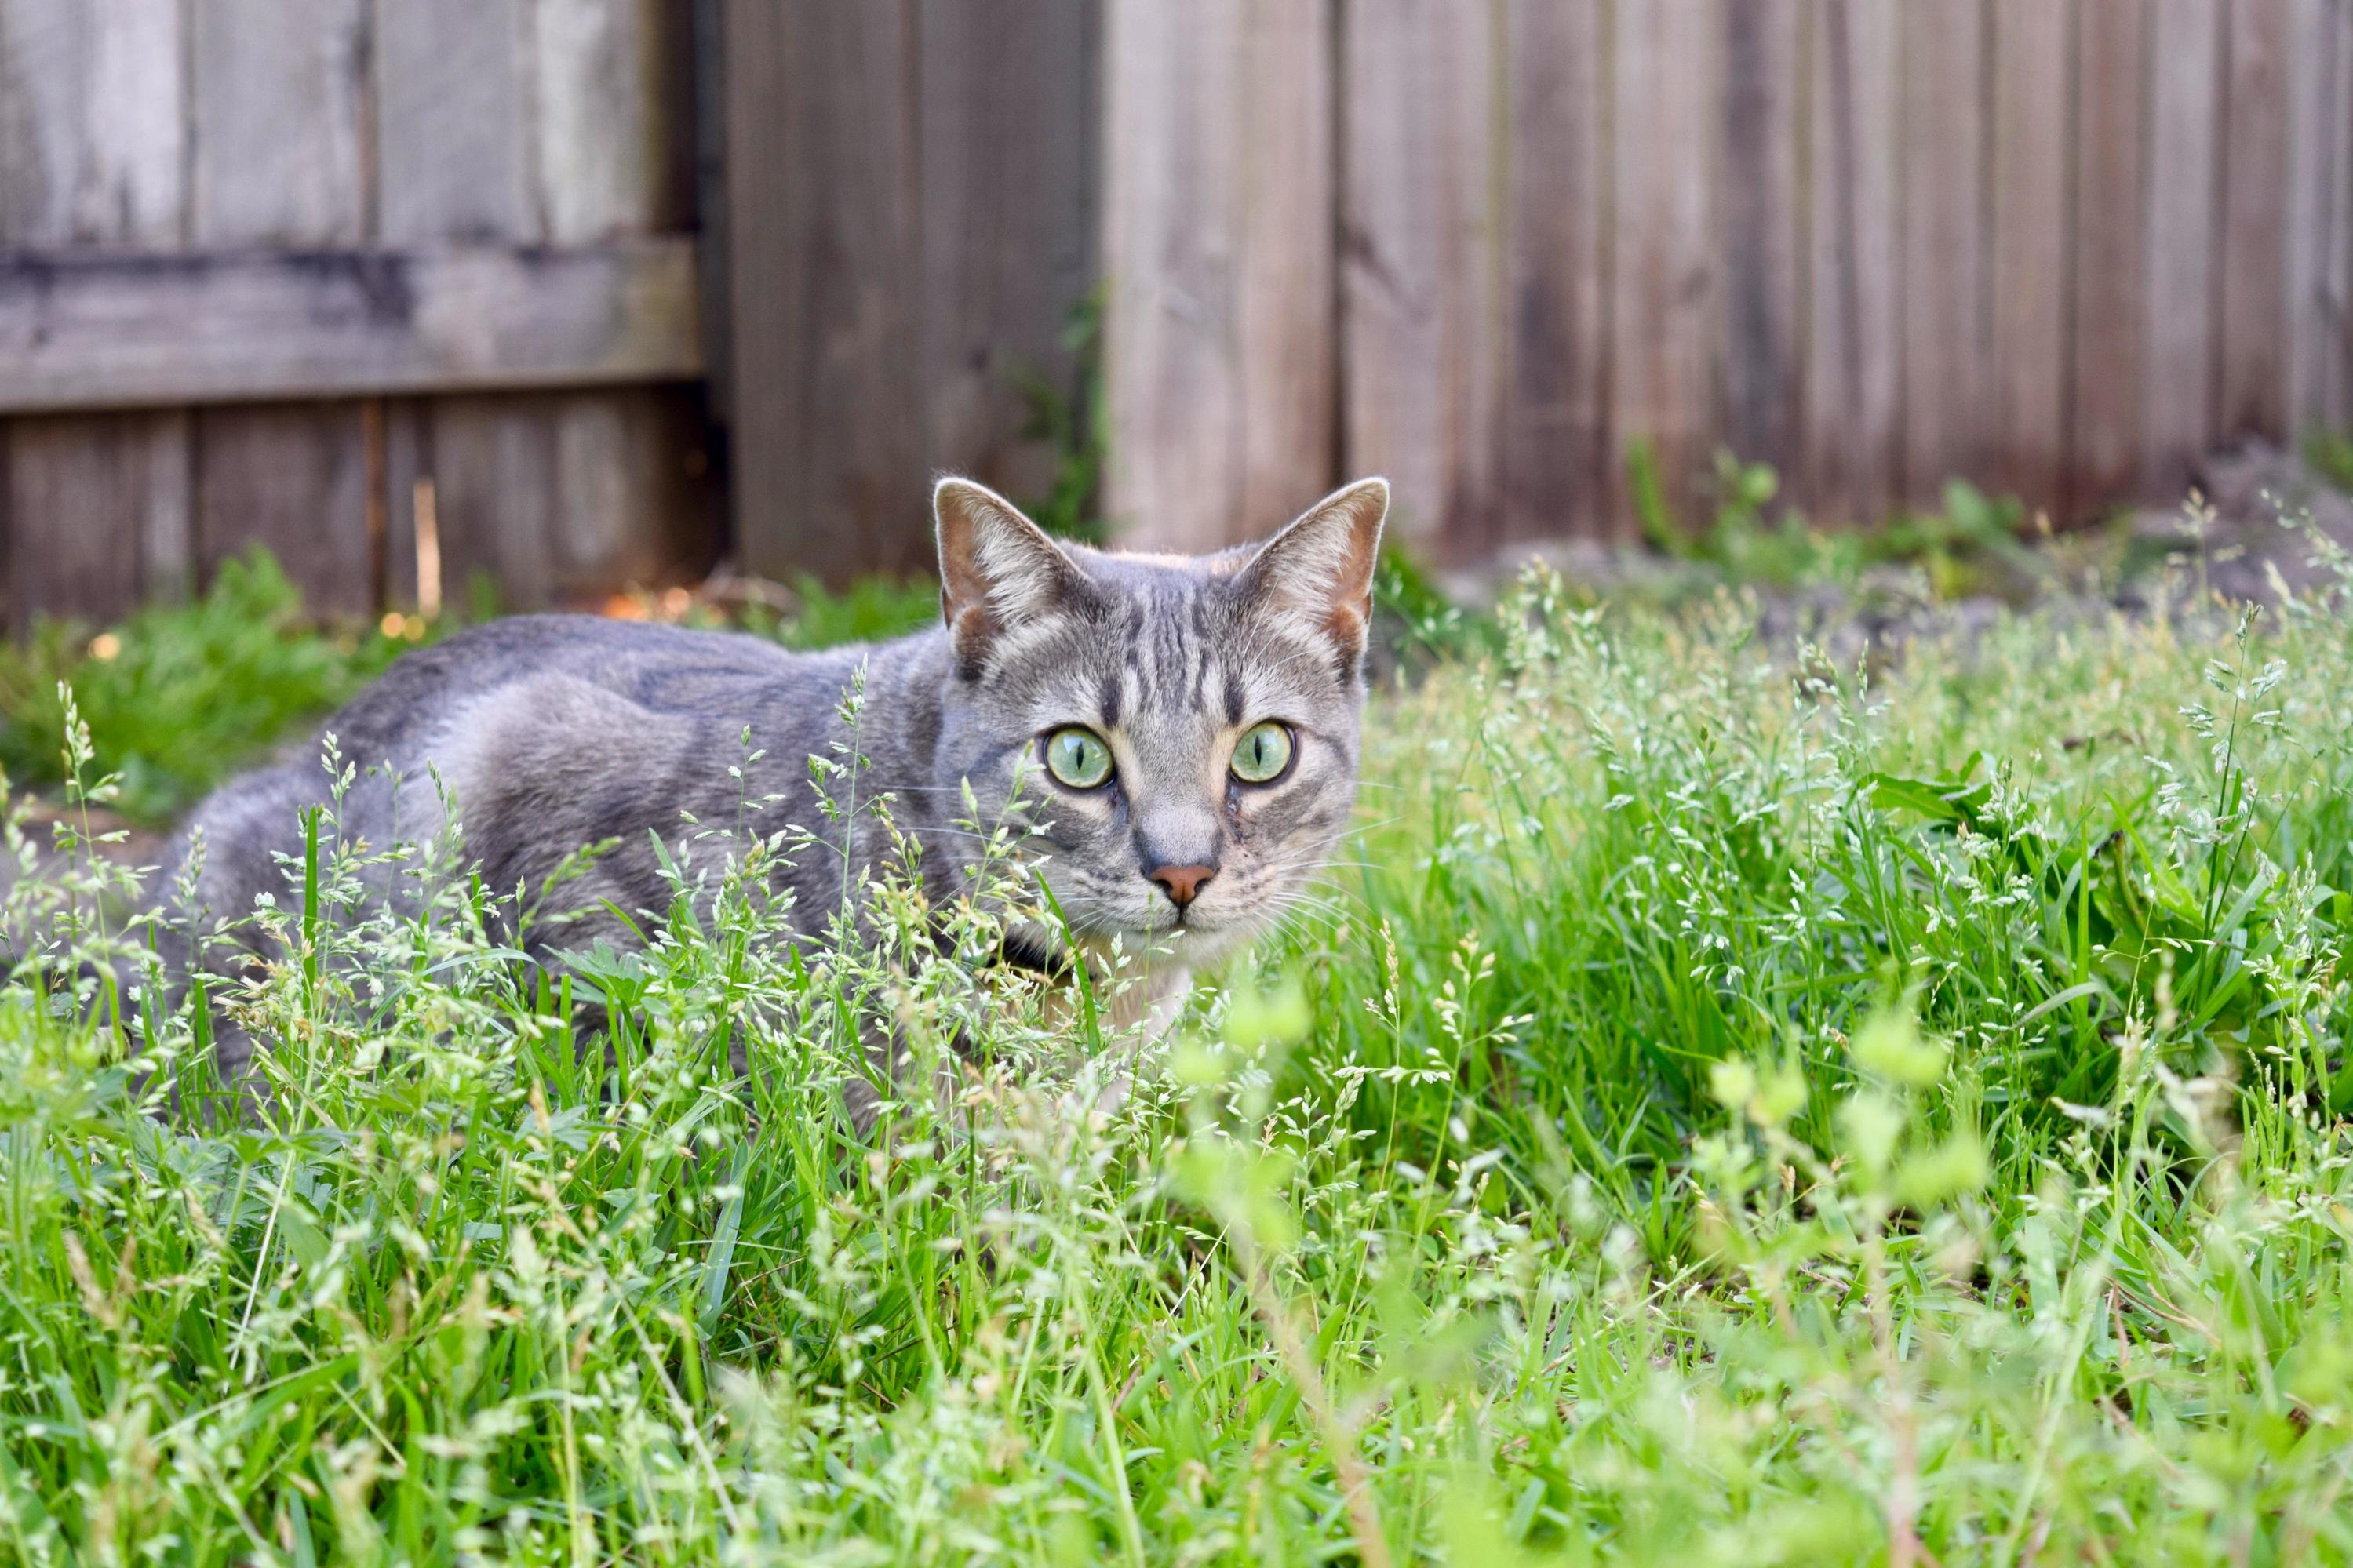 An indoor cat getting acquainted with the wild wild back yard